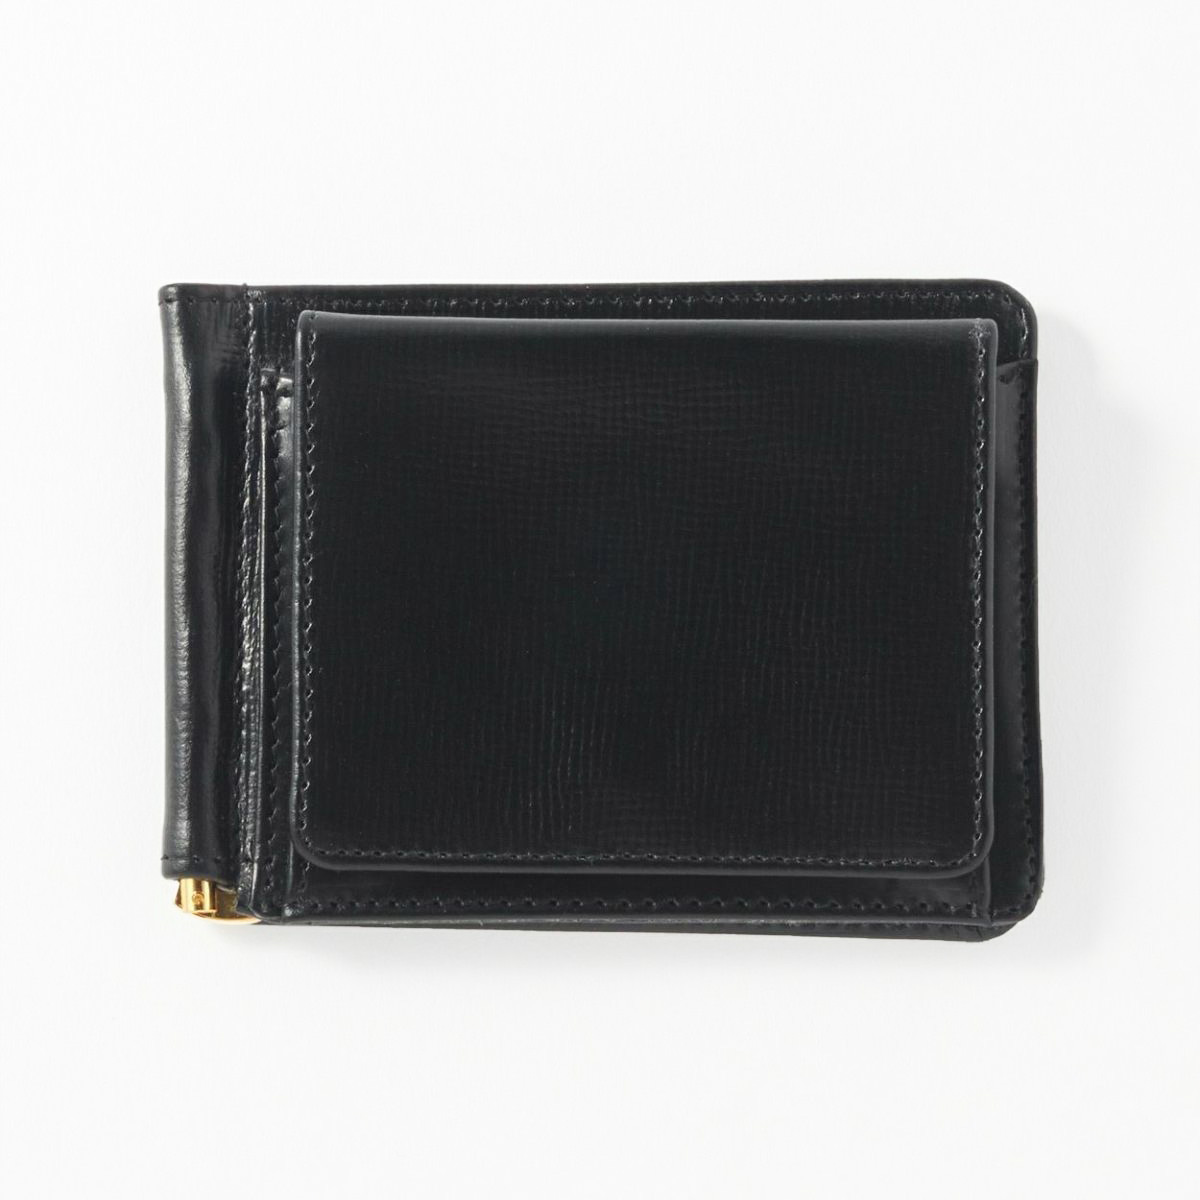 MONEY CLIP WITH COIN POCKET(Lakeland Bridle)